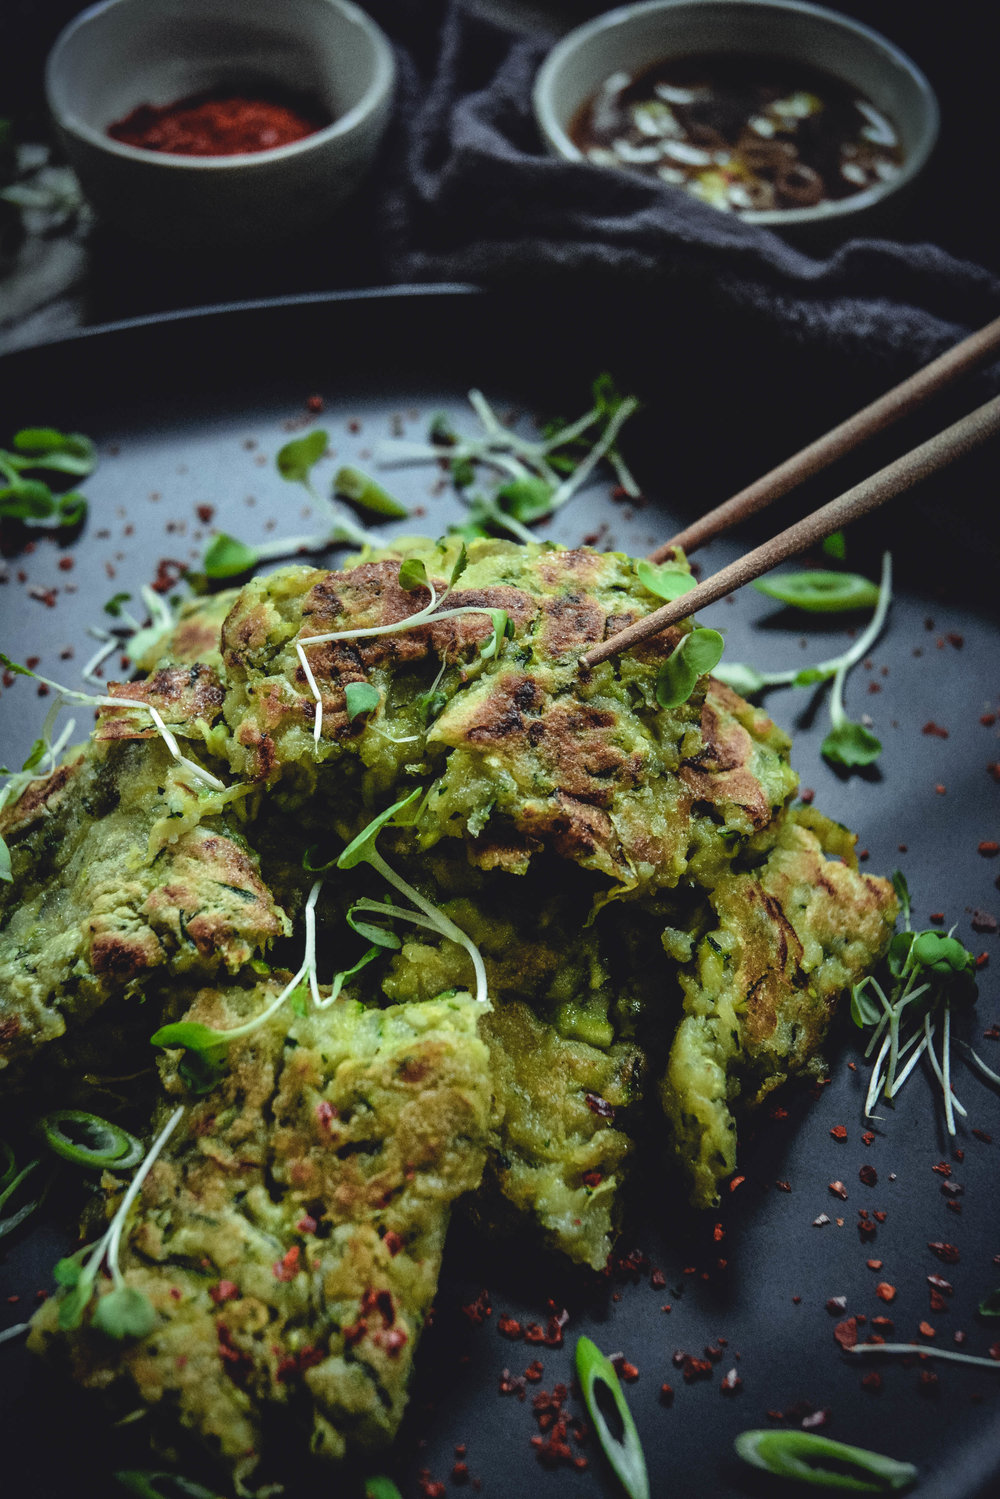 zucchini pancakes with sweet and sour dipping sauce